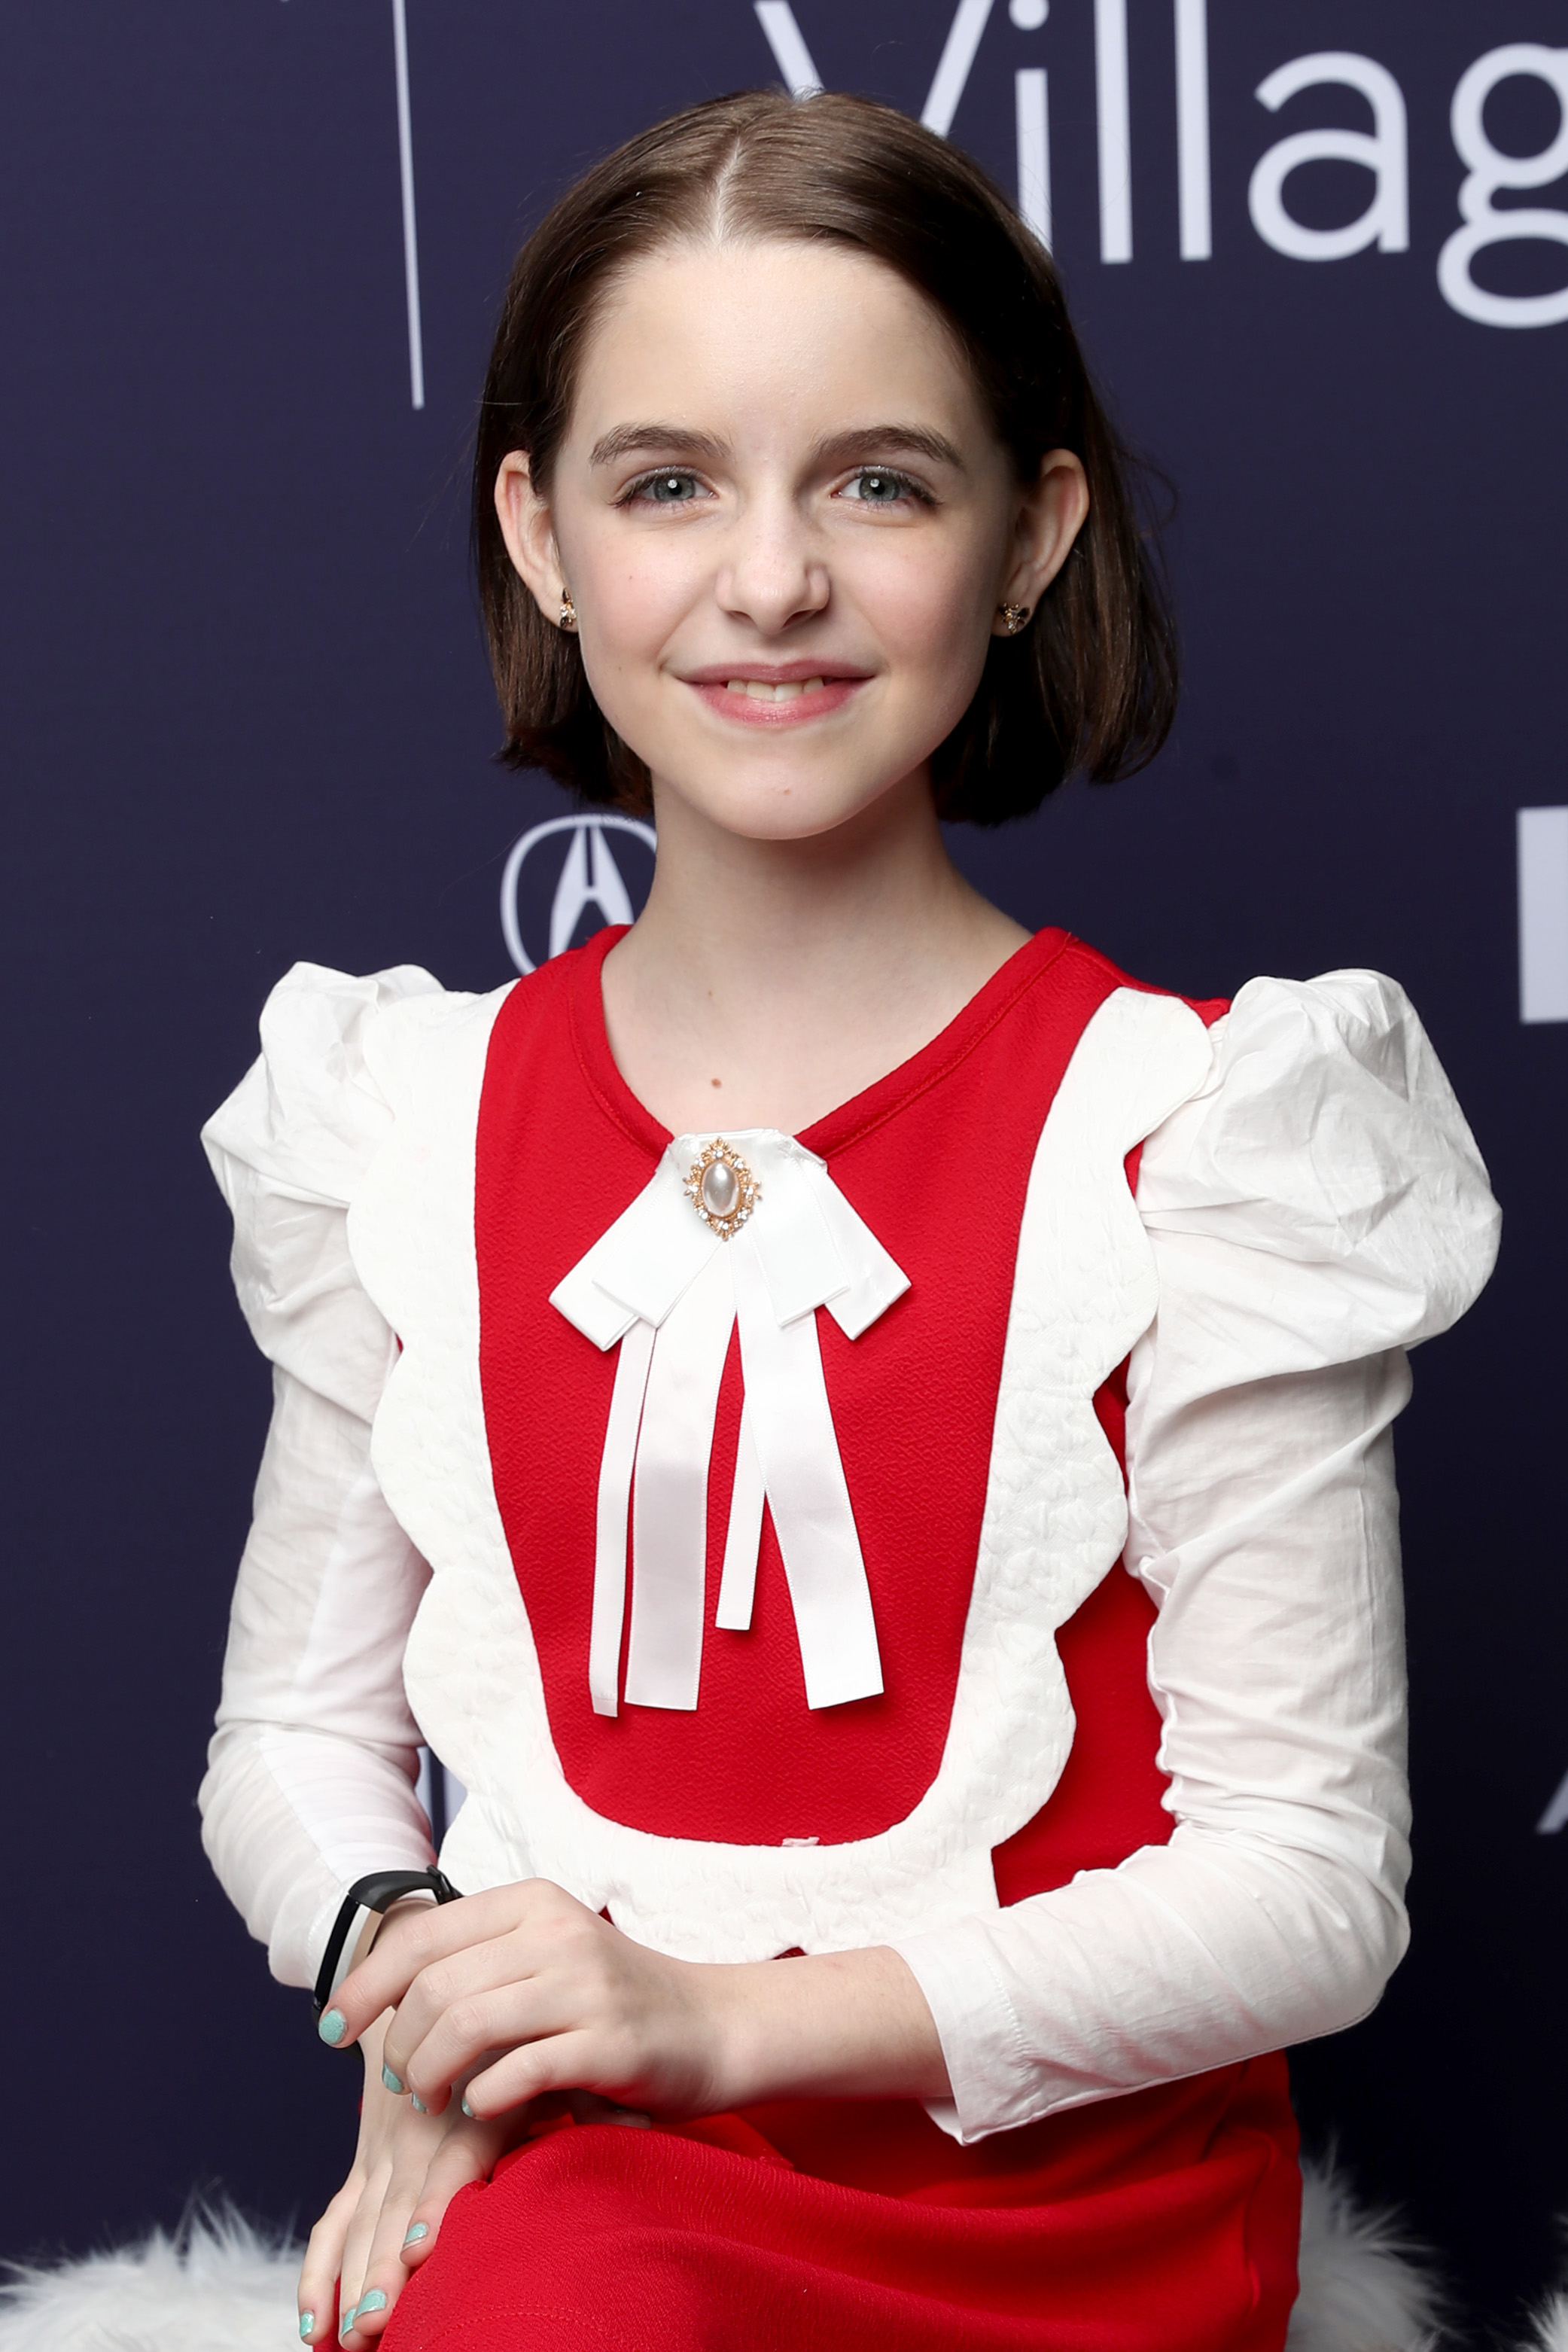 Mckenna Grace of 'Troop Zero' attends The IMDb Studio at Acura Festival Village on location at The 2019 Sundance Film Festival - Day 3 on January 27, 2019 in Park City, Utah.